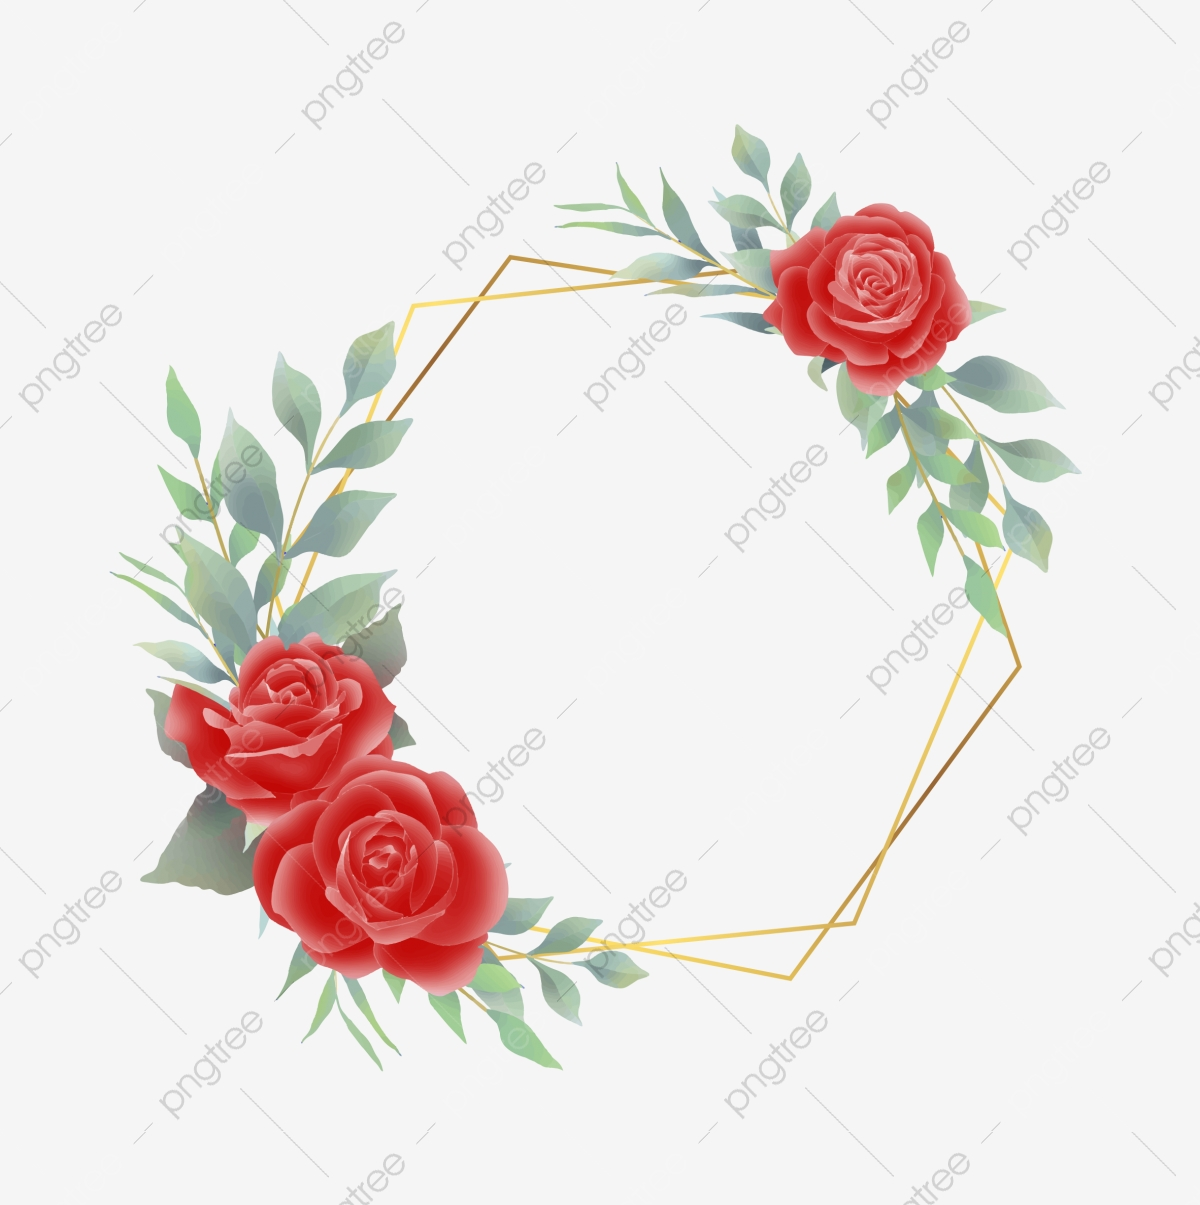 Rose Frame Png Images Vector And Psd Files Free Download On Pngtree